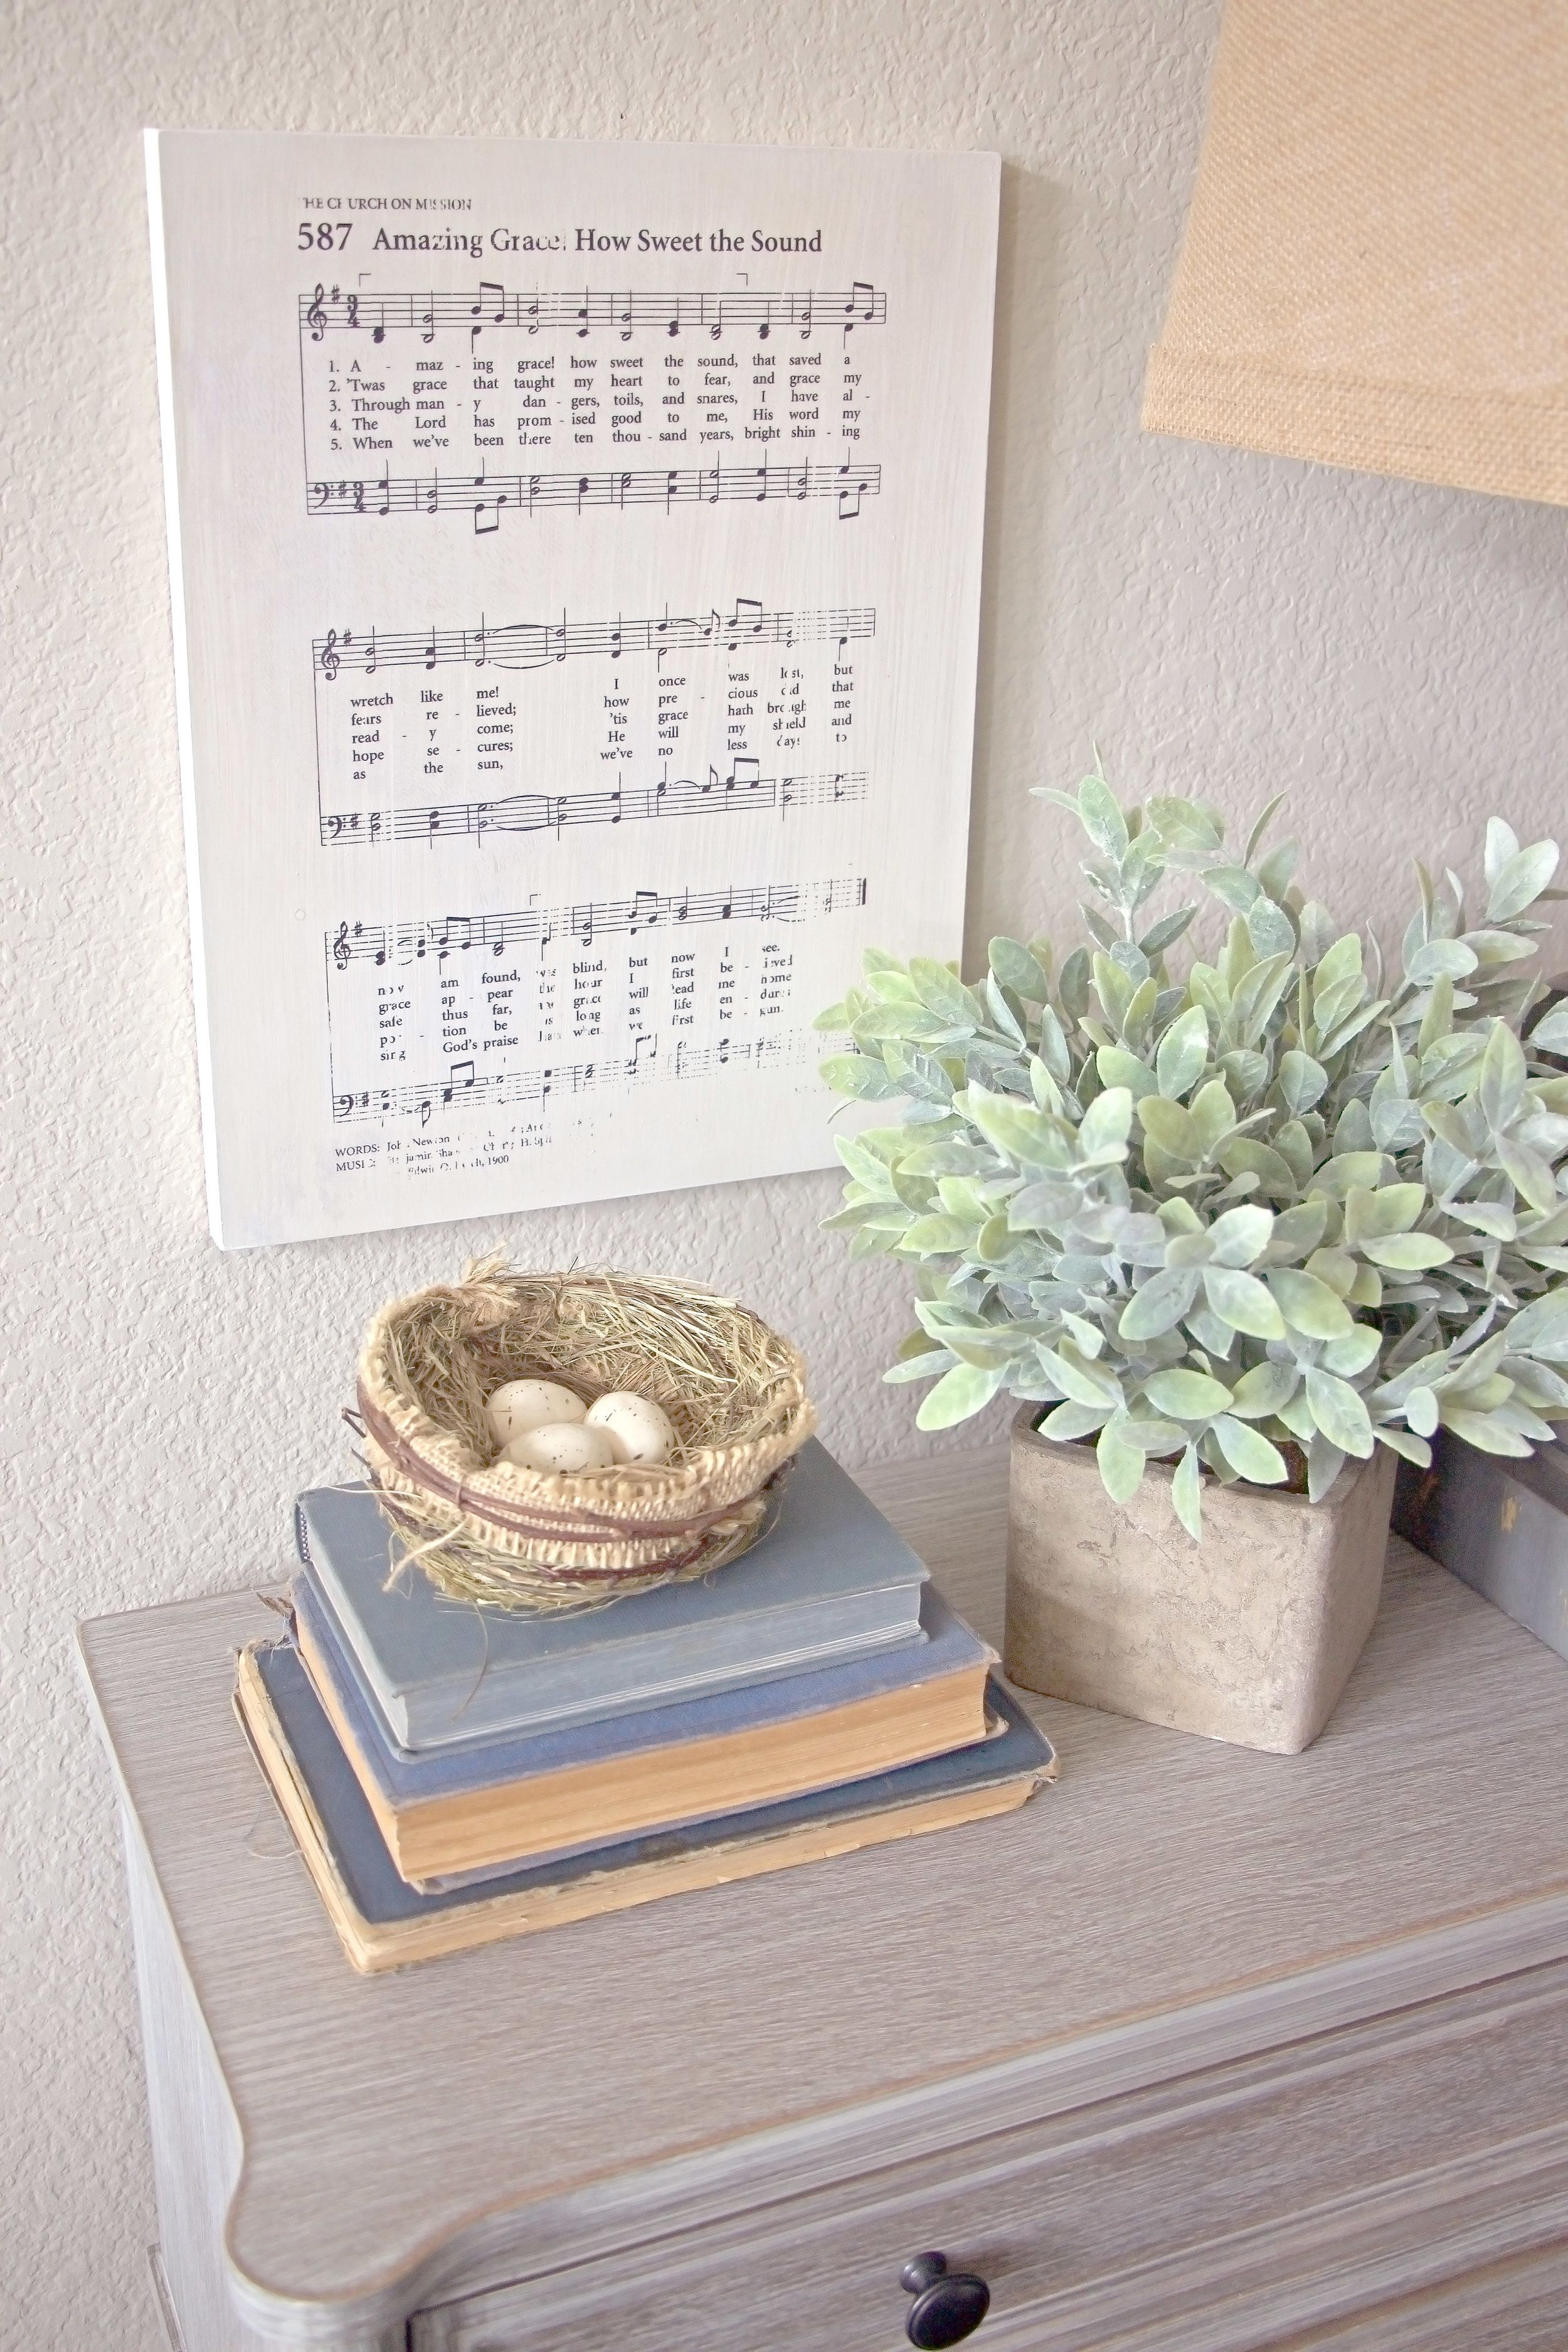 Amazing Grace Hymn Wood Art Piece. Add meaningful art to your home or give the sentimental gift of a cherished memory with our Hymnal Art Collection. These hymnal art prints are a beautiful addition to a gallery wall or propped up on a nightstand or mantel.